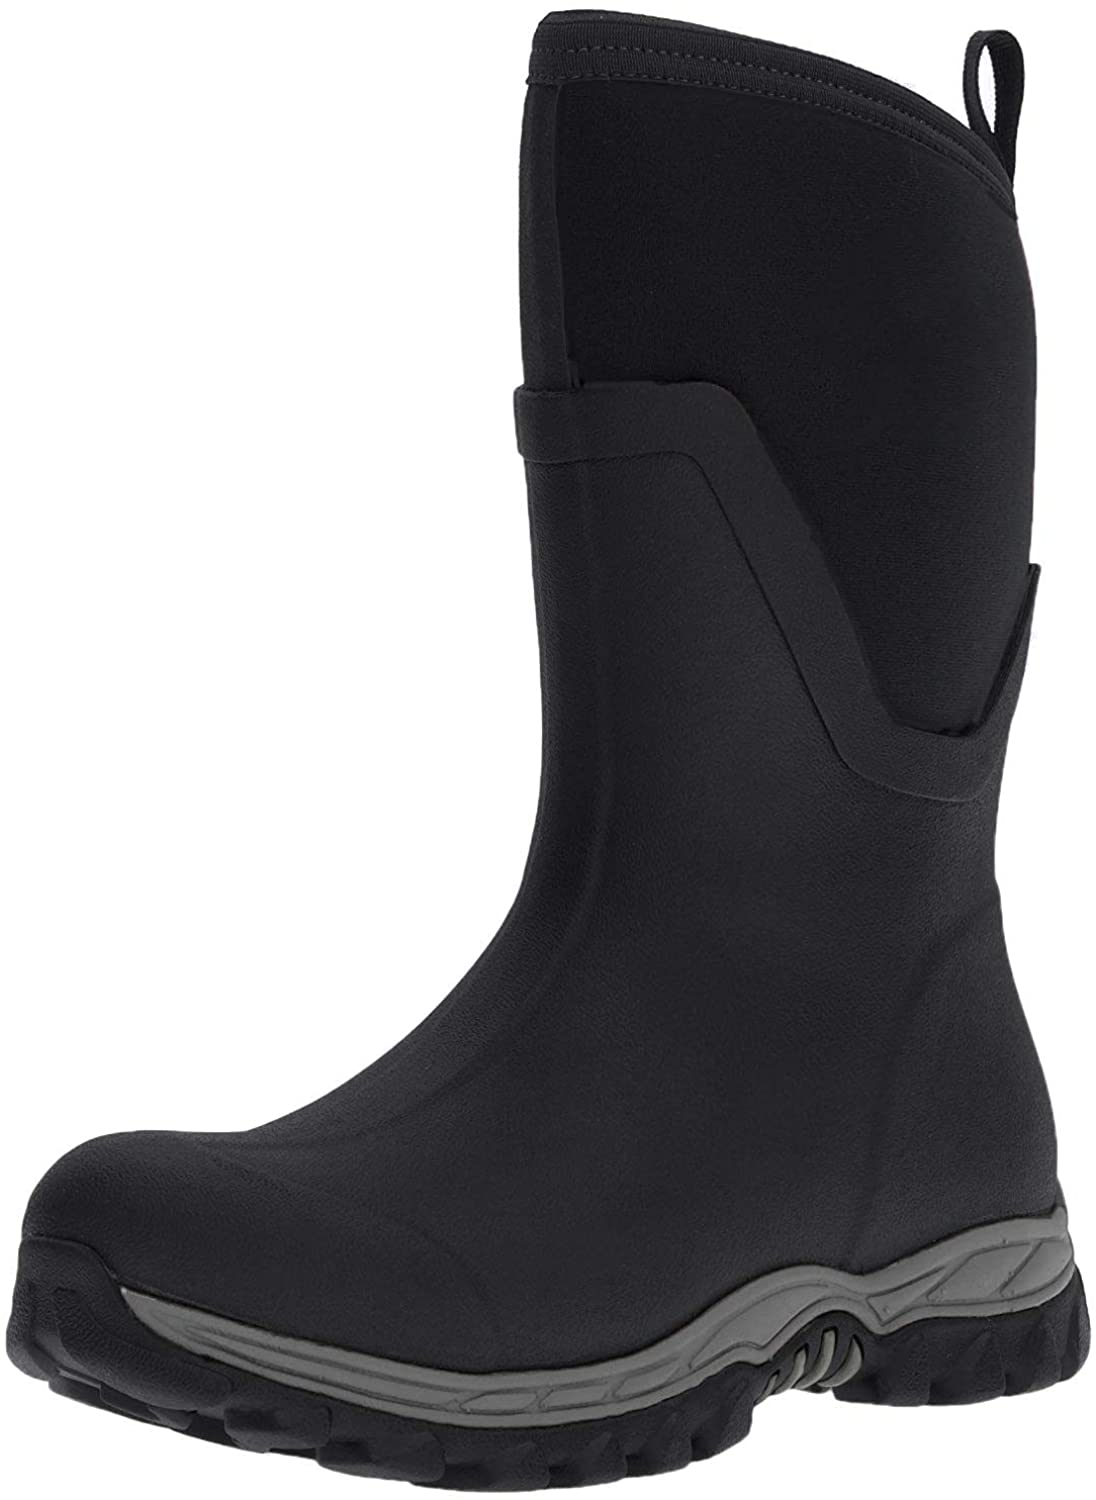 Muck Boot Arctic Sport II Extreme Conditions Mid-Height Rubber Women's Winter Boot, Black, 7 M US